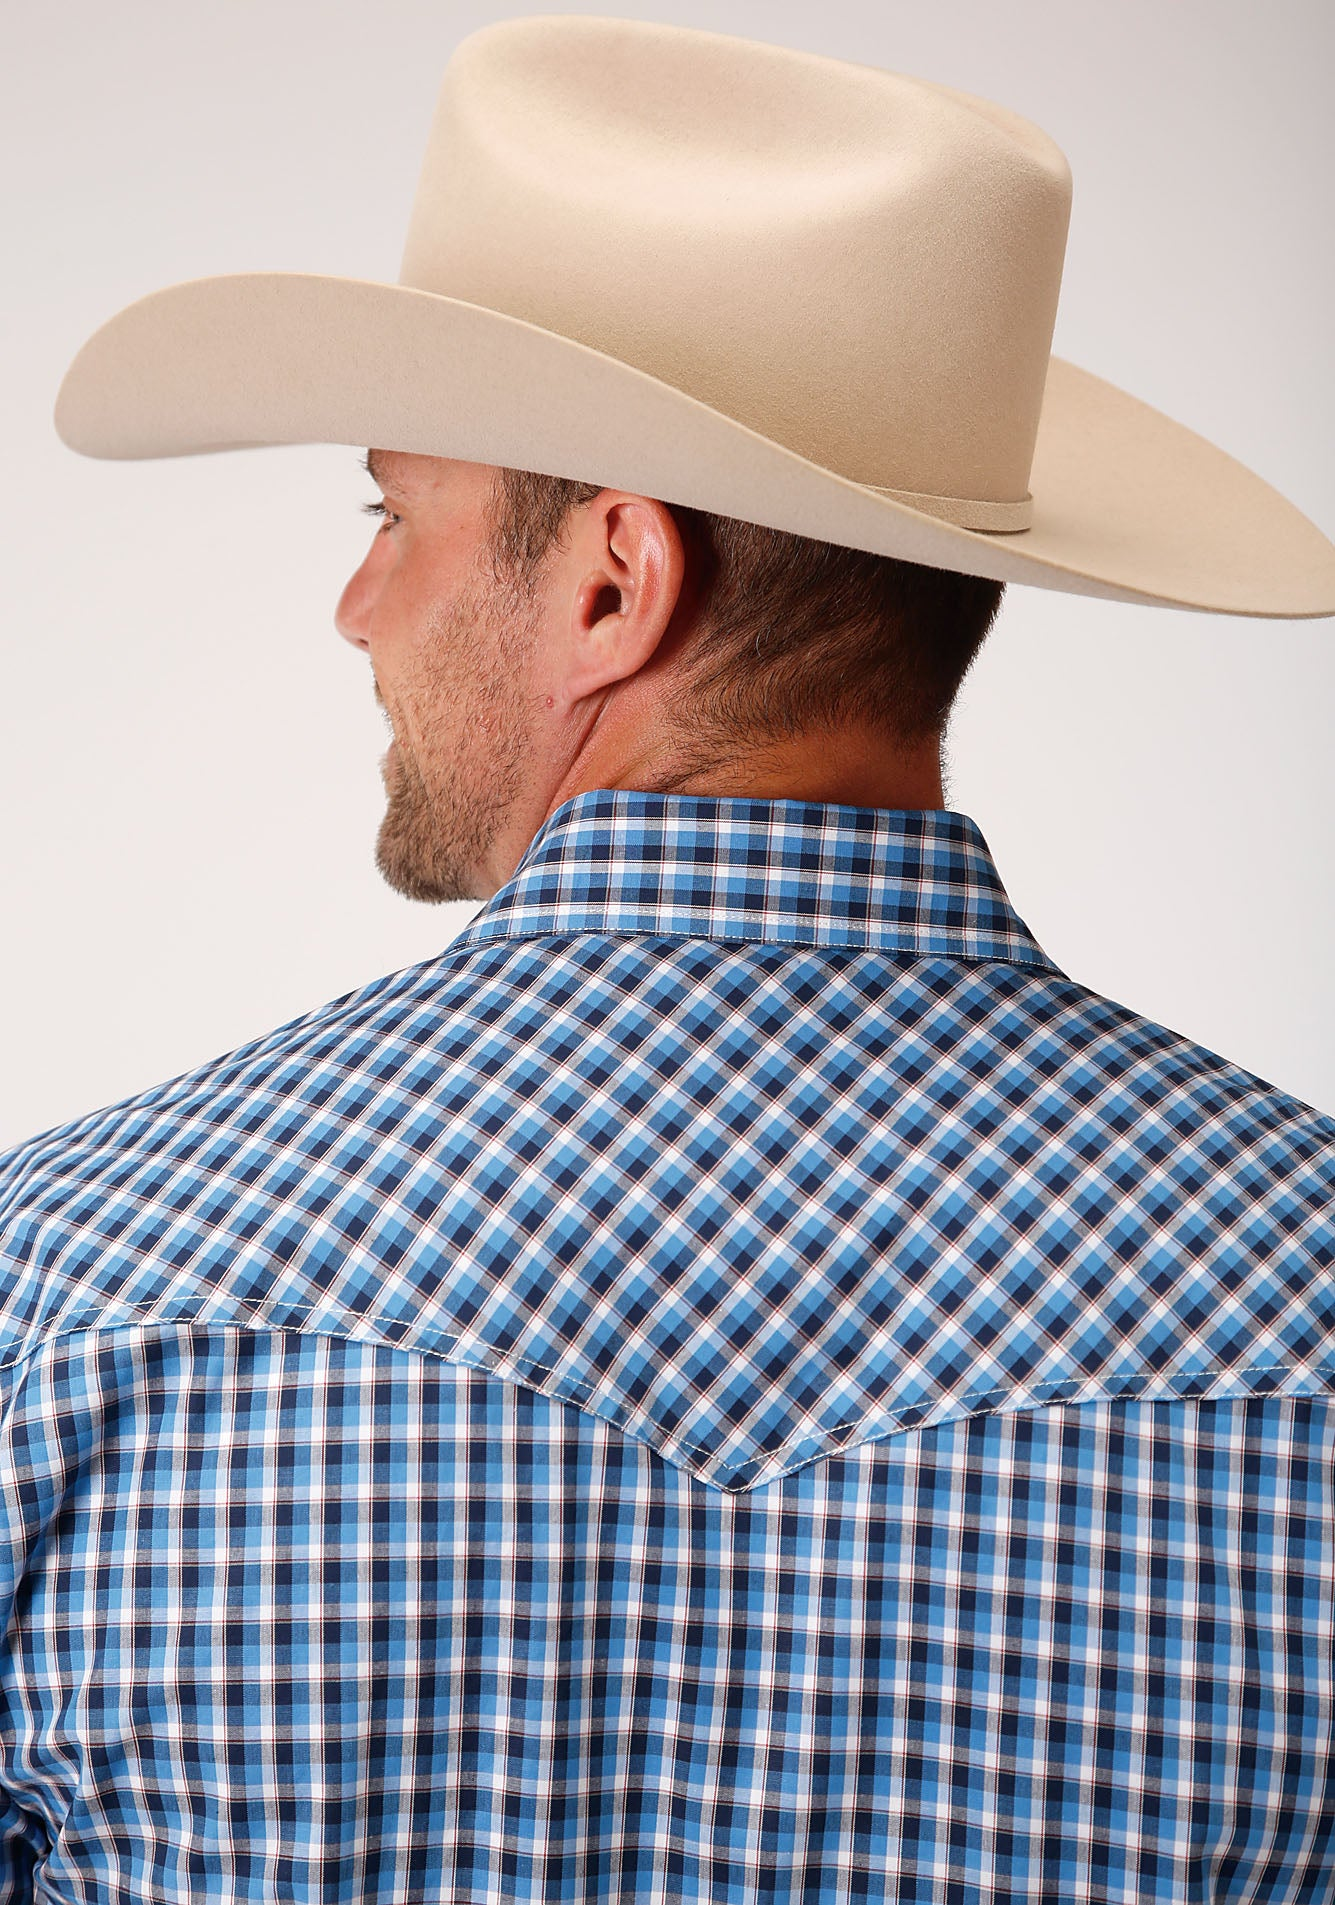 ROPER MENS BLUE 00021 AMERICANA CHECK MEN'S AMARILLO COLLECTION- HERITAGE LONG SLEEVE